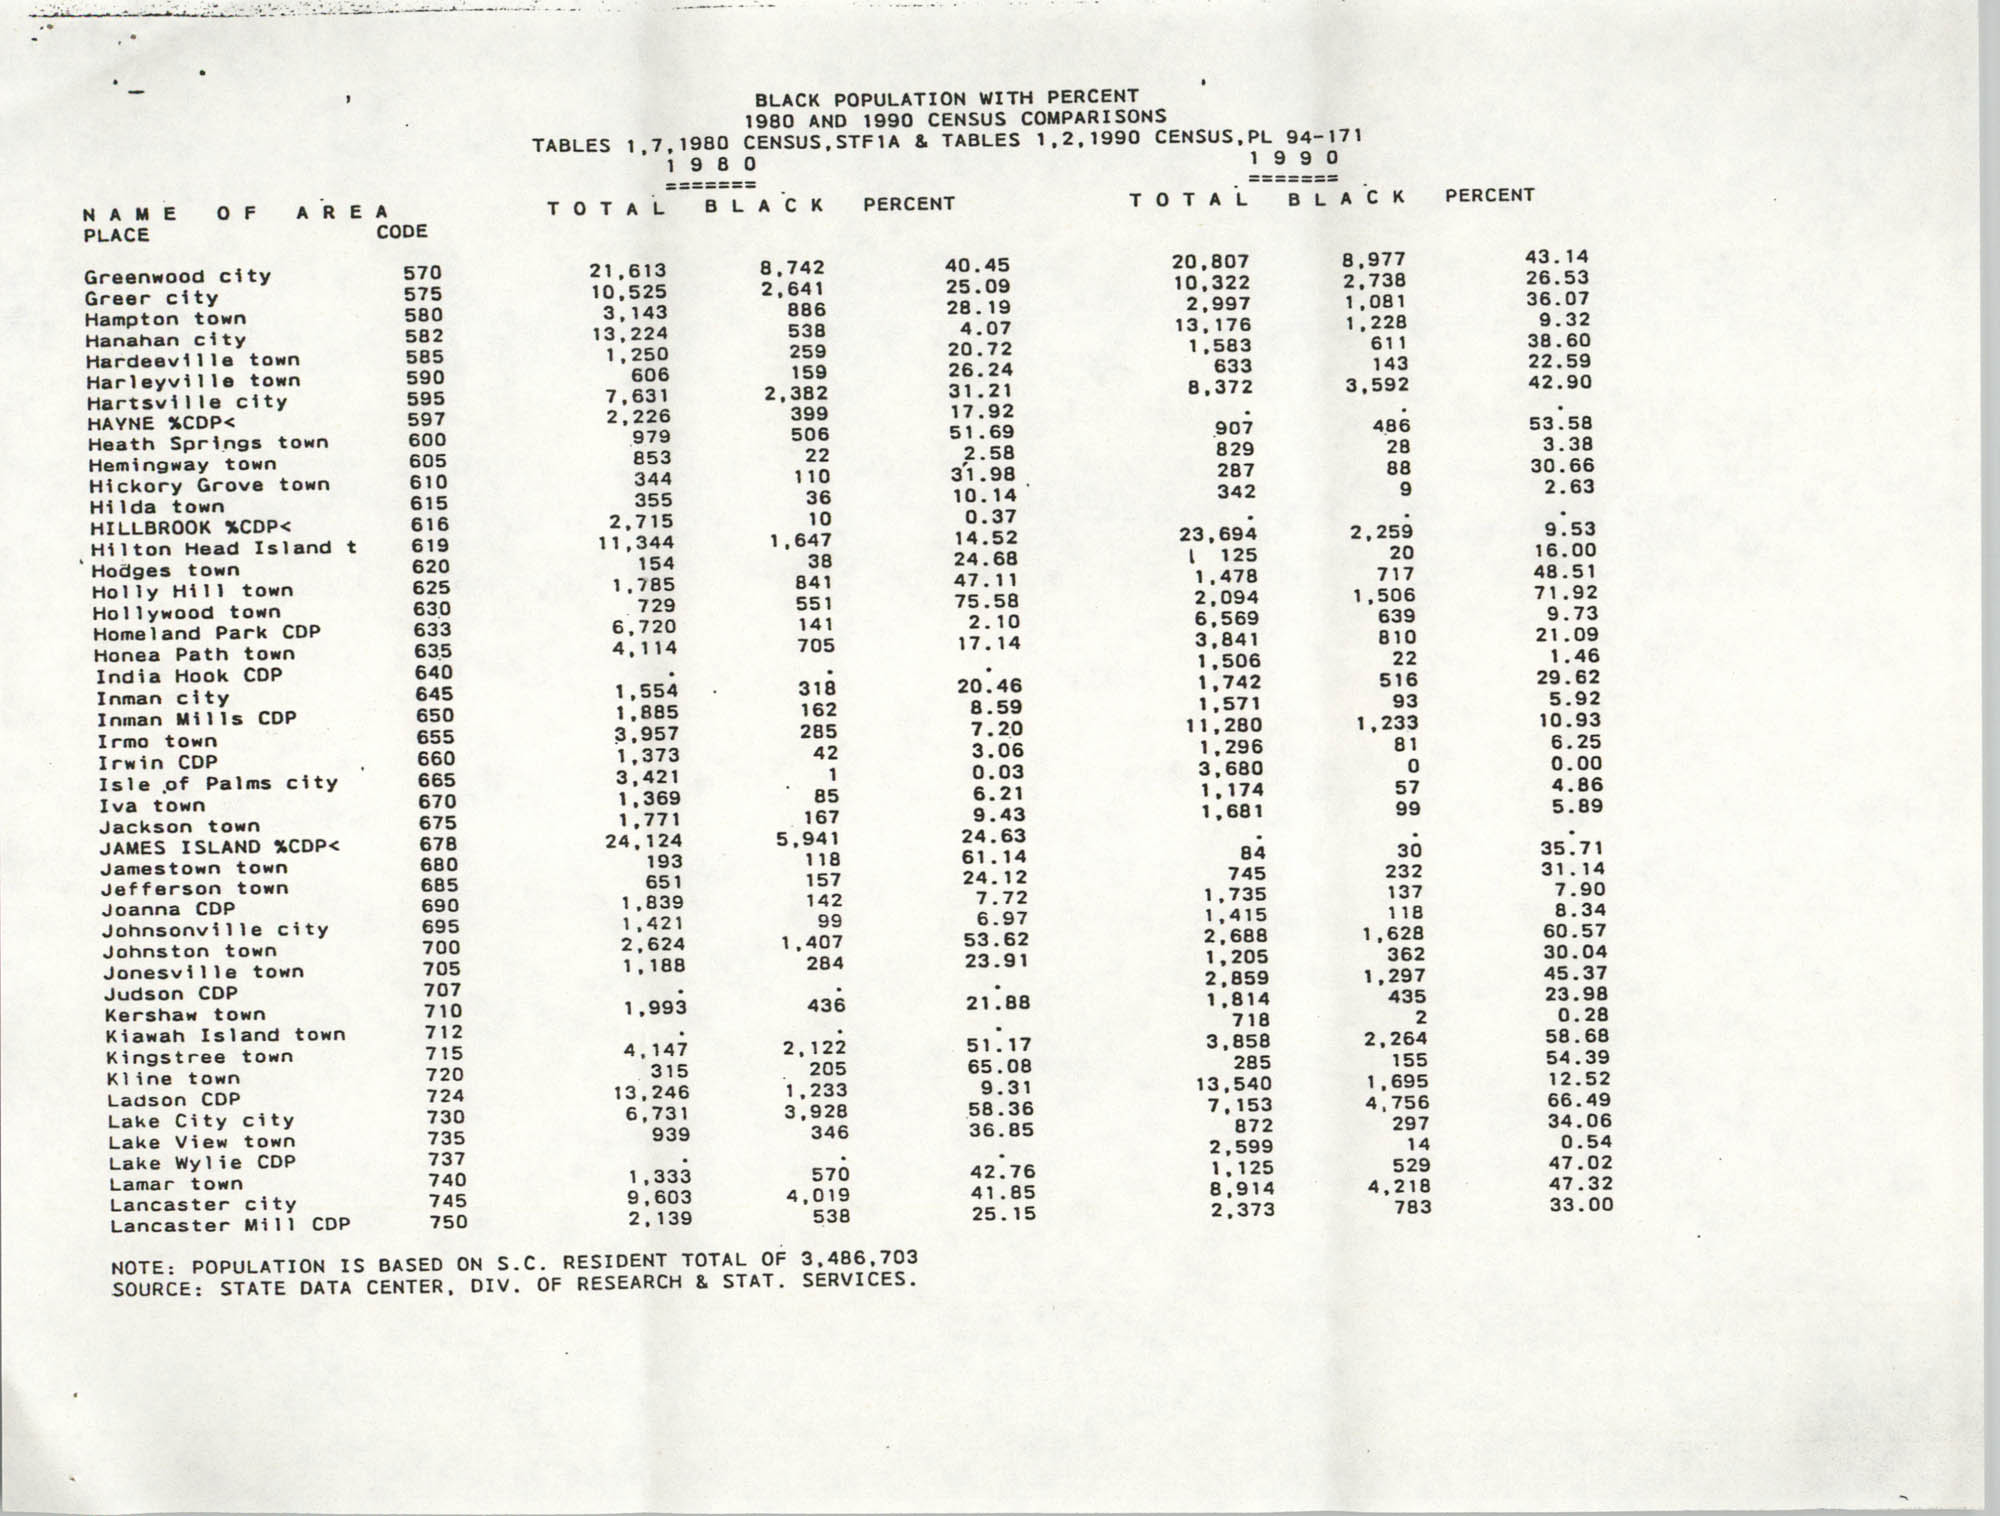 Black Population with Percent, 1980 and 1990 Census Comparison, Page 5